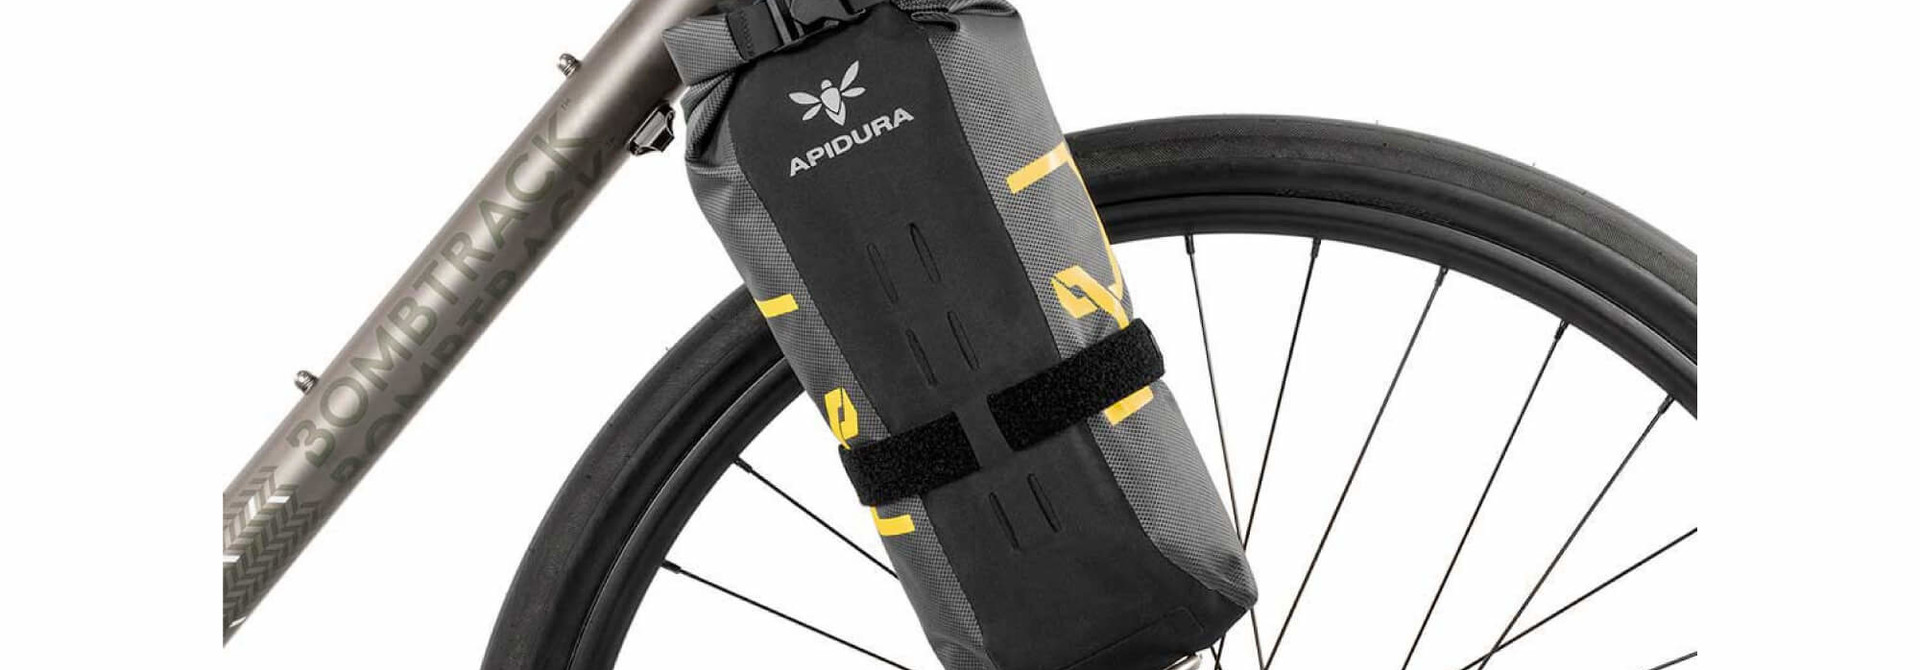 Expedition Fork Pack